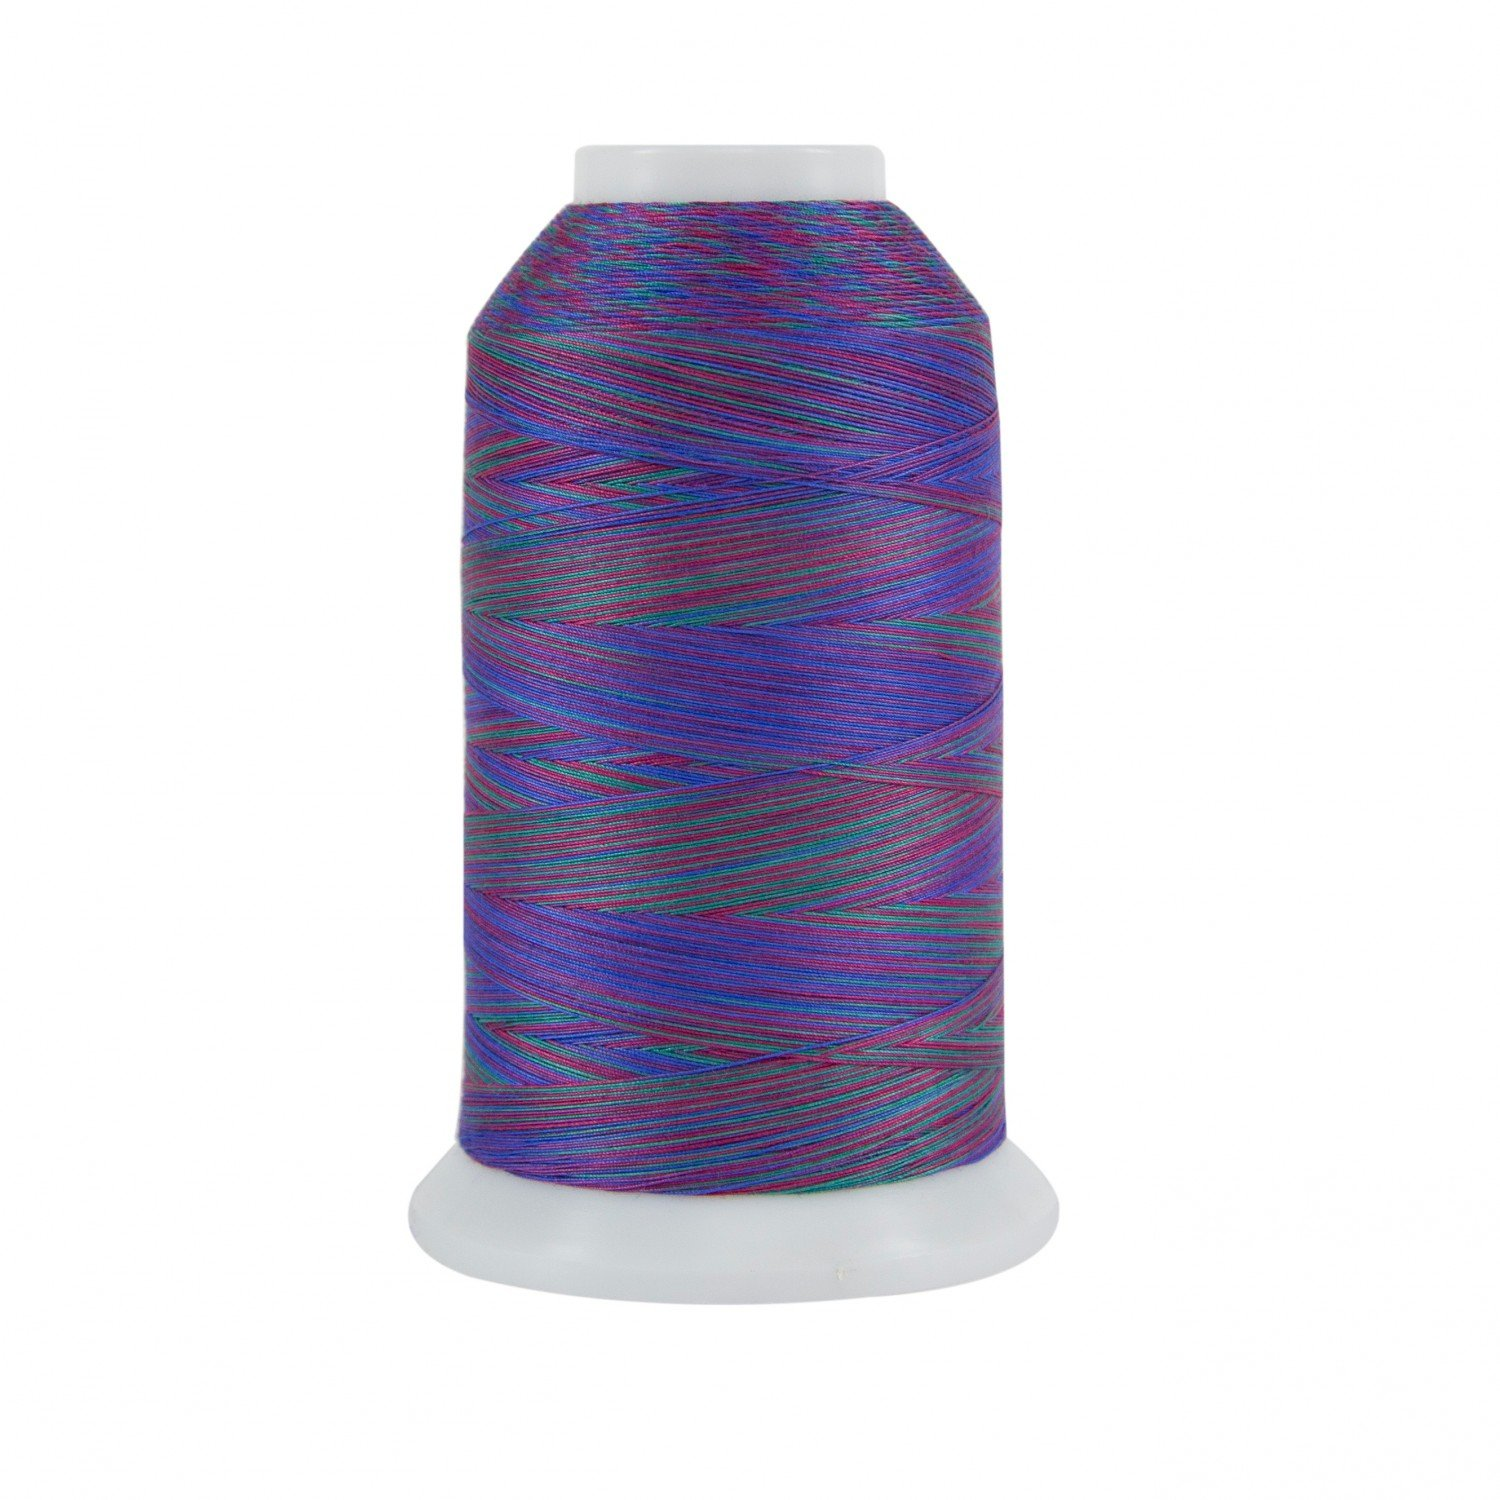 King Tut Cotton Quilting Thread 913 Jewel of the Nile 3-ply 40wt 2000yds Cone